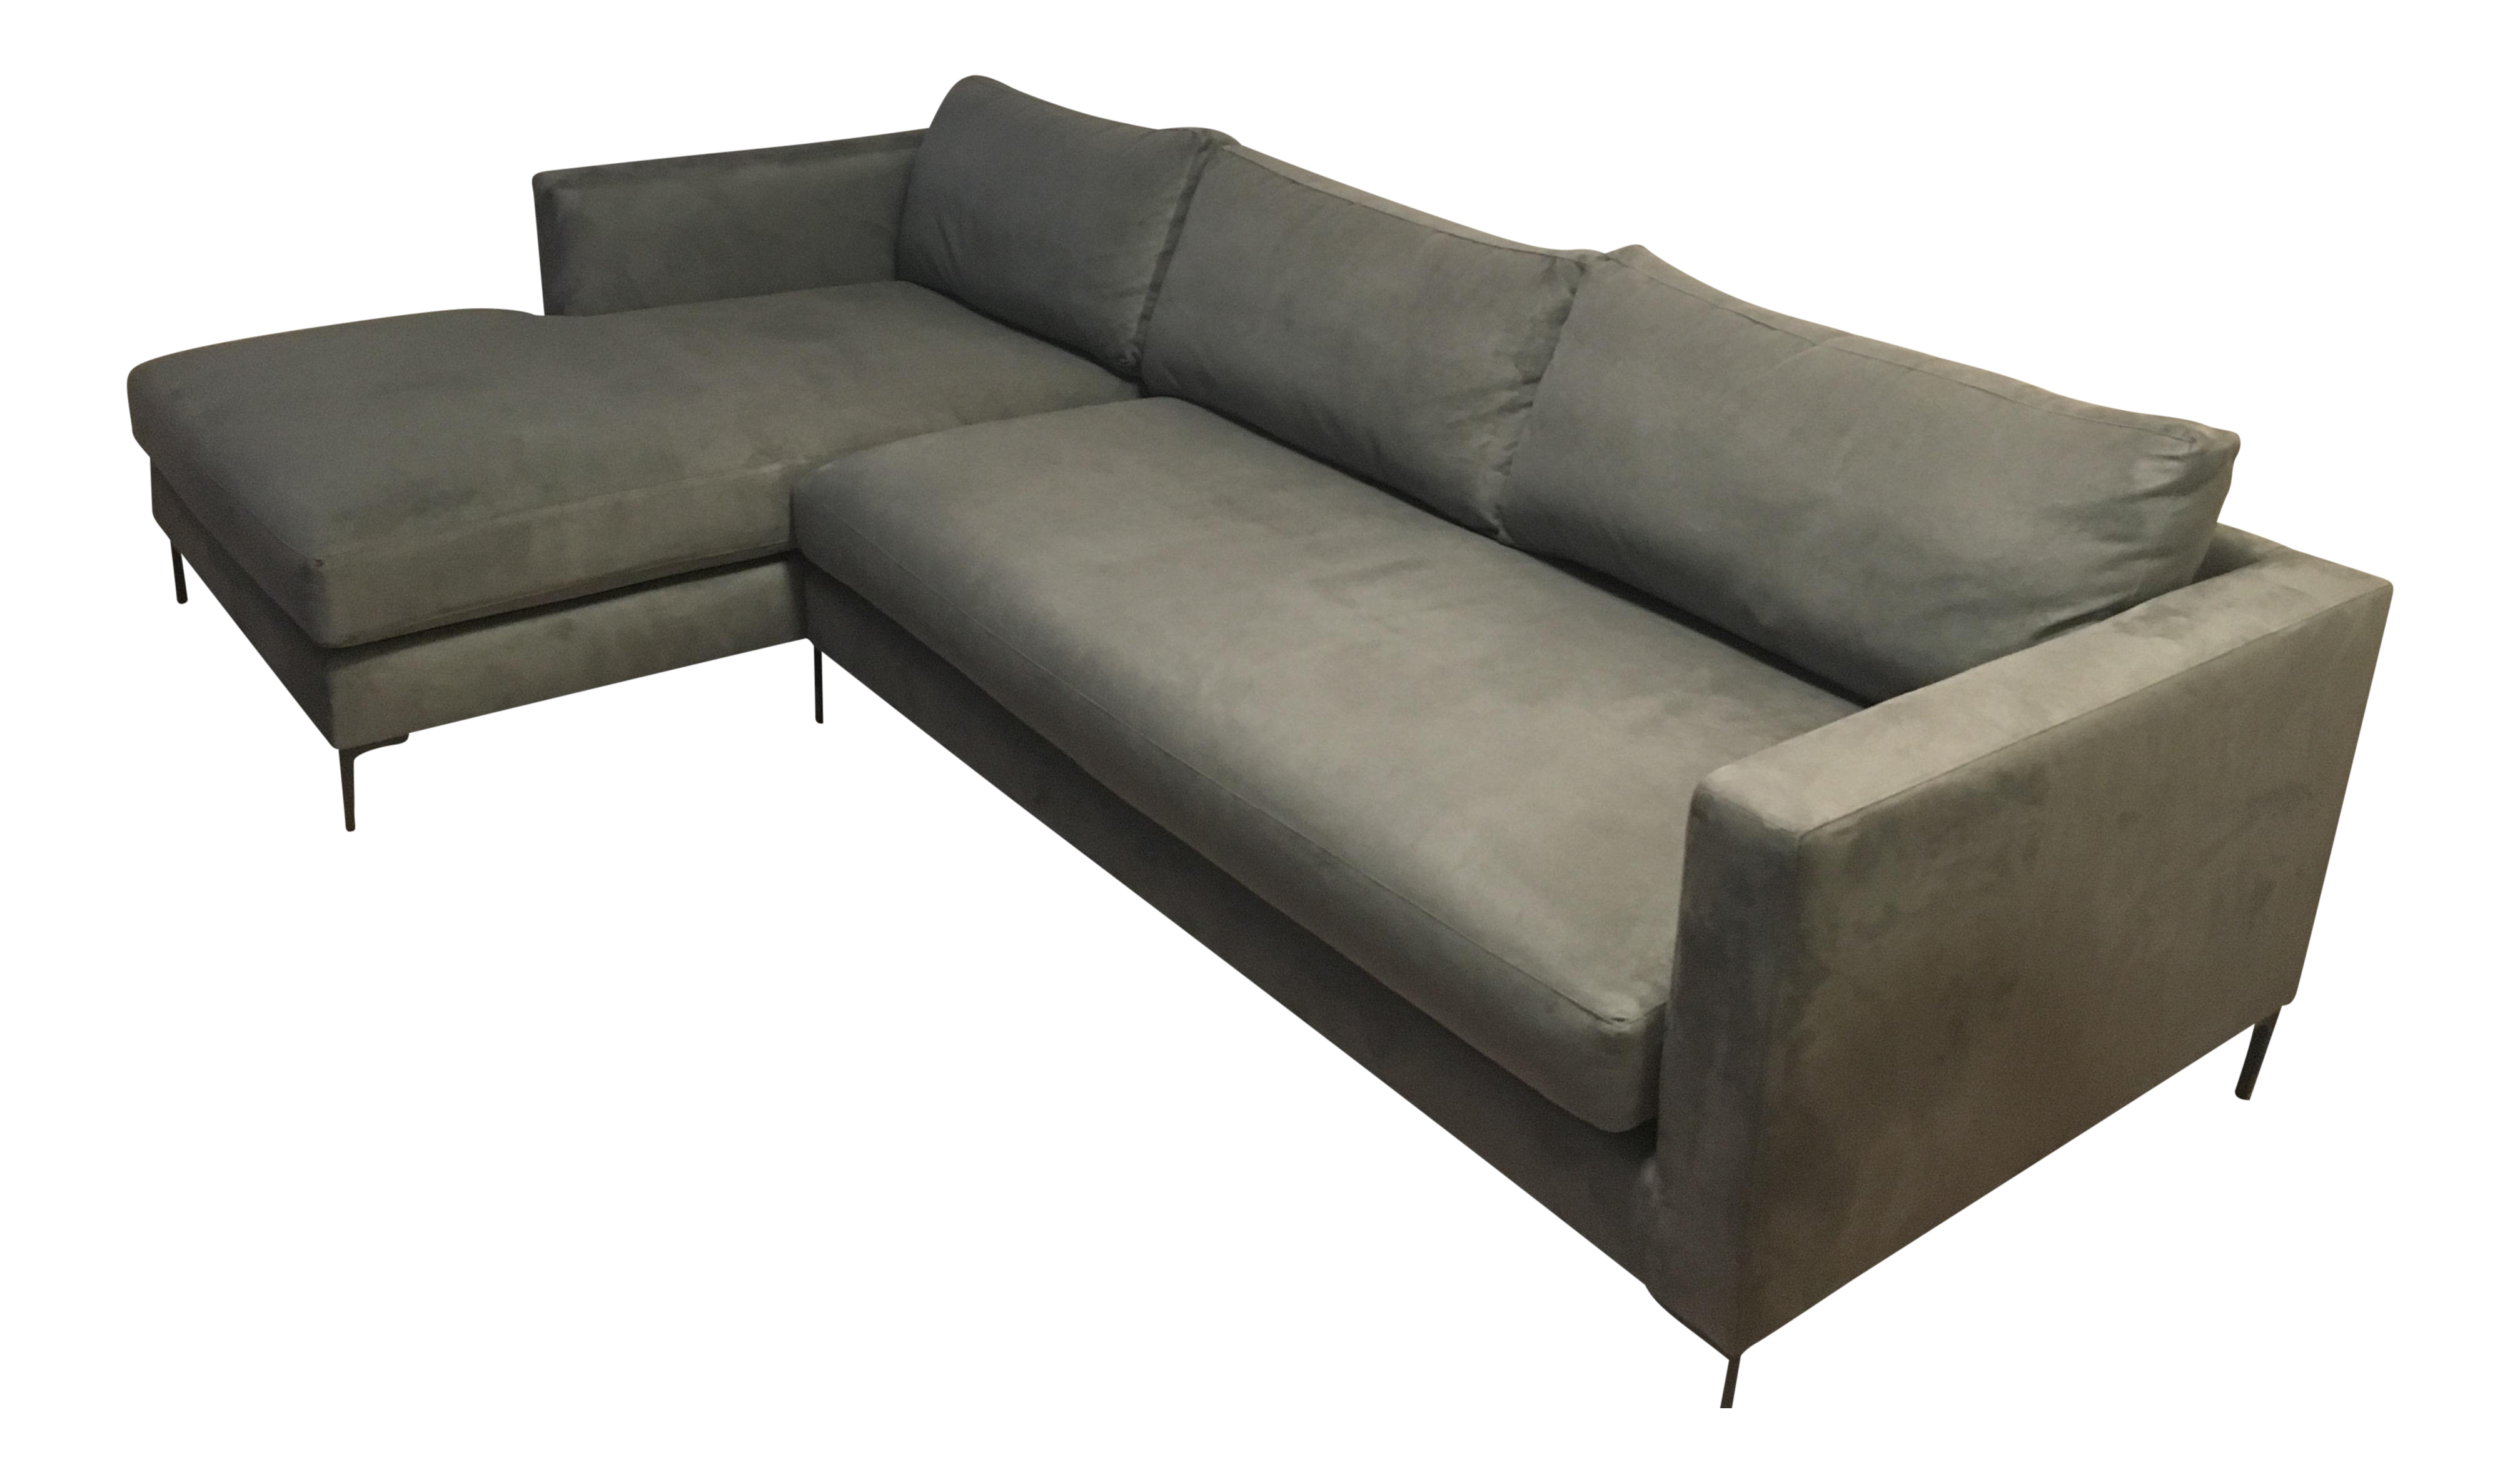 Pottery Barn Jake Upholstered Right Arm Sofa W/ Chaise Sectional For Sale